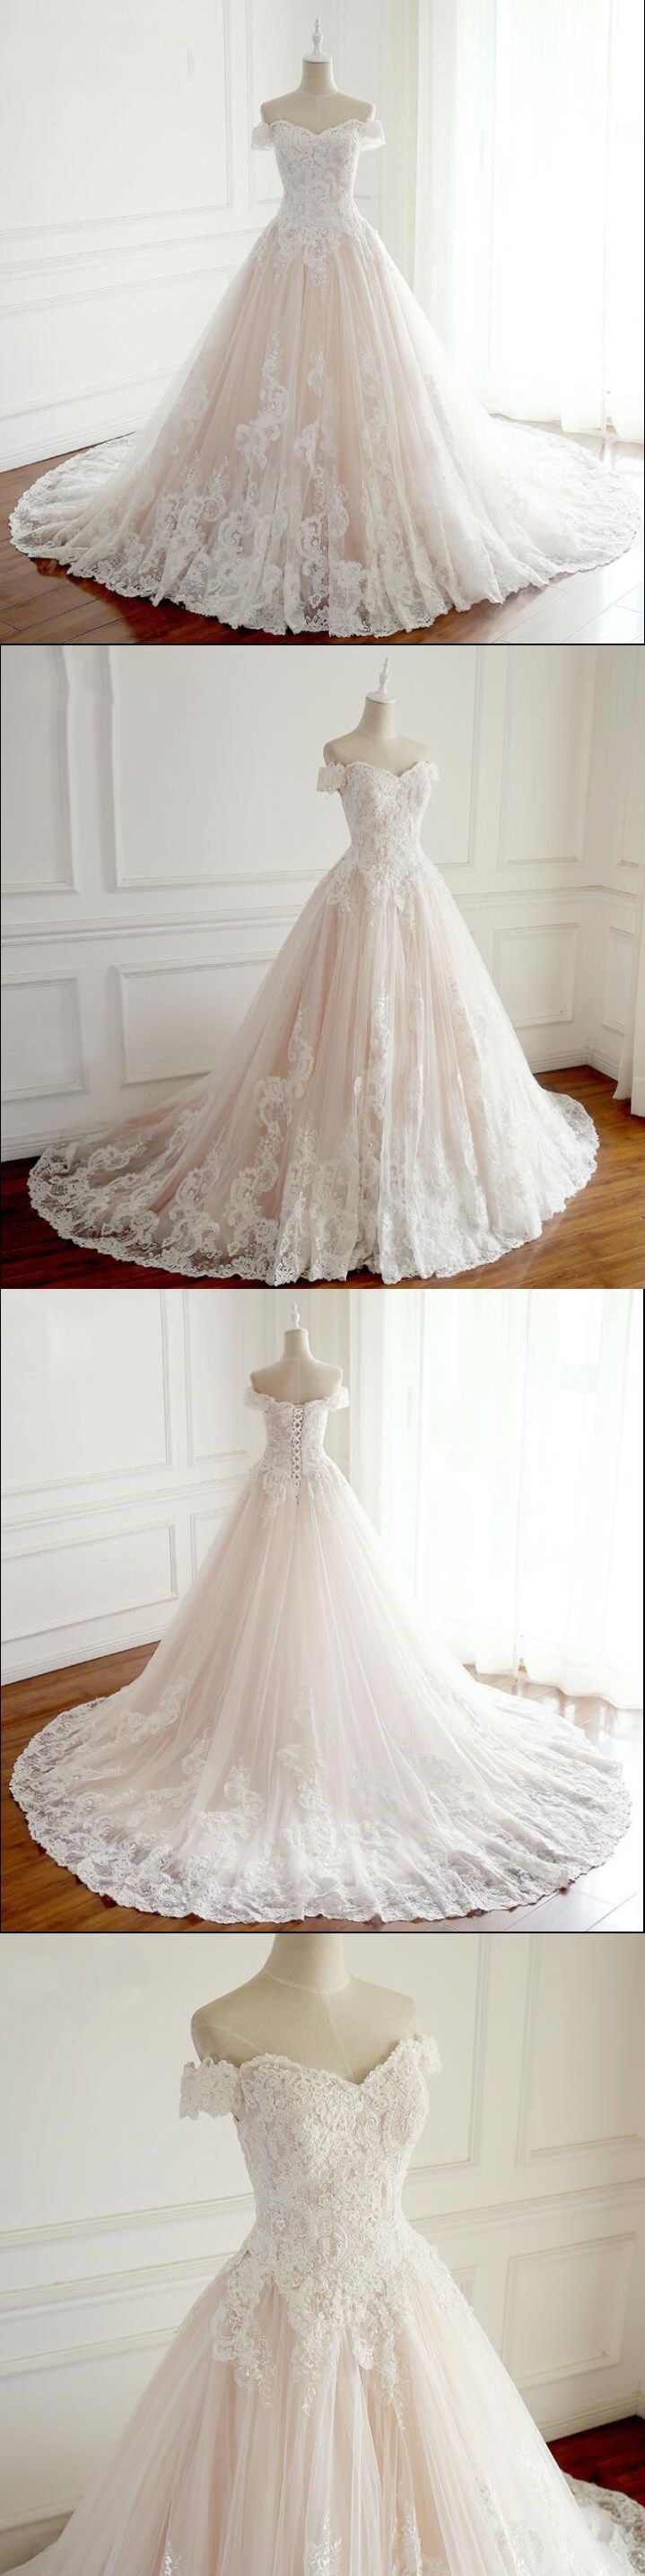 Off shoulder aline princess wedding dresses sparing bridal